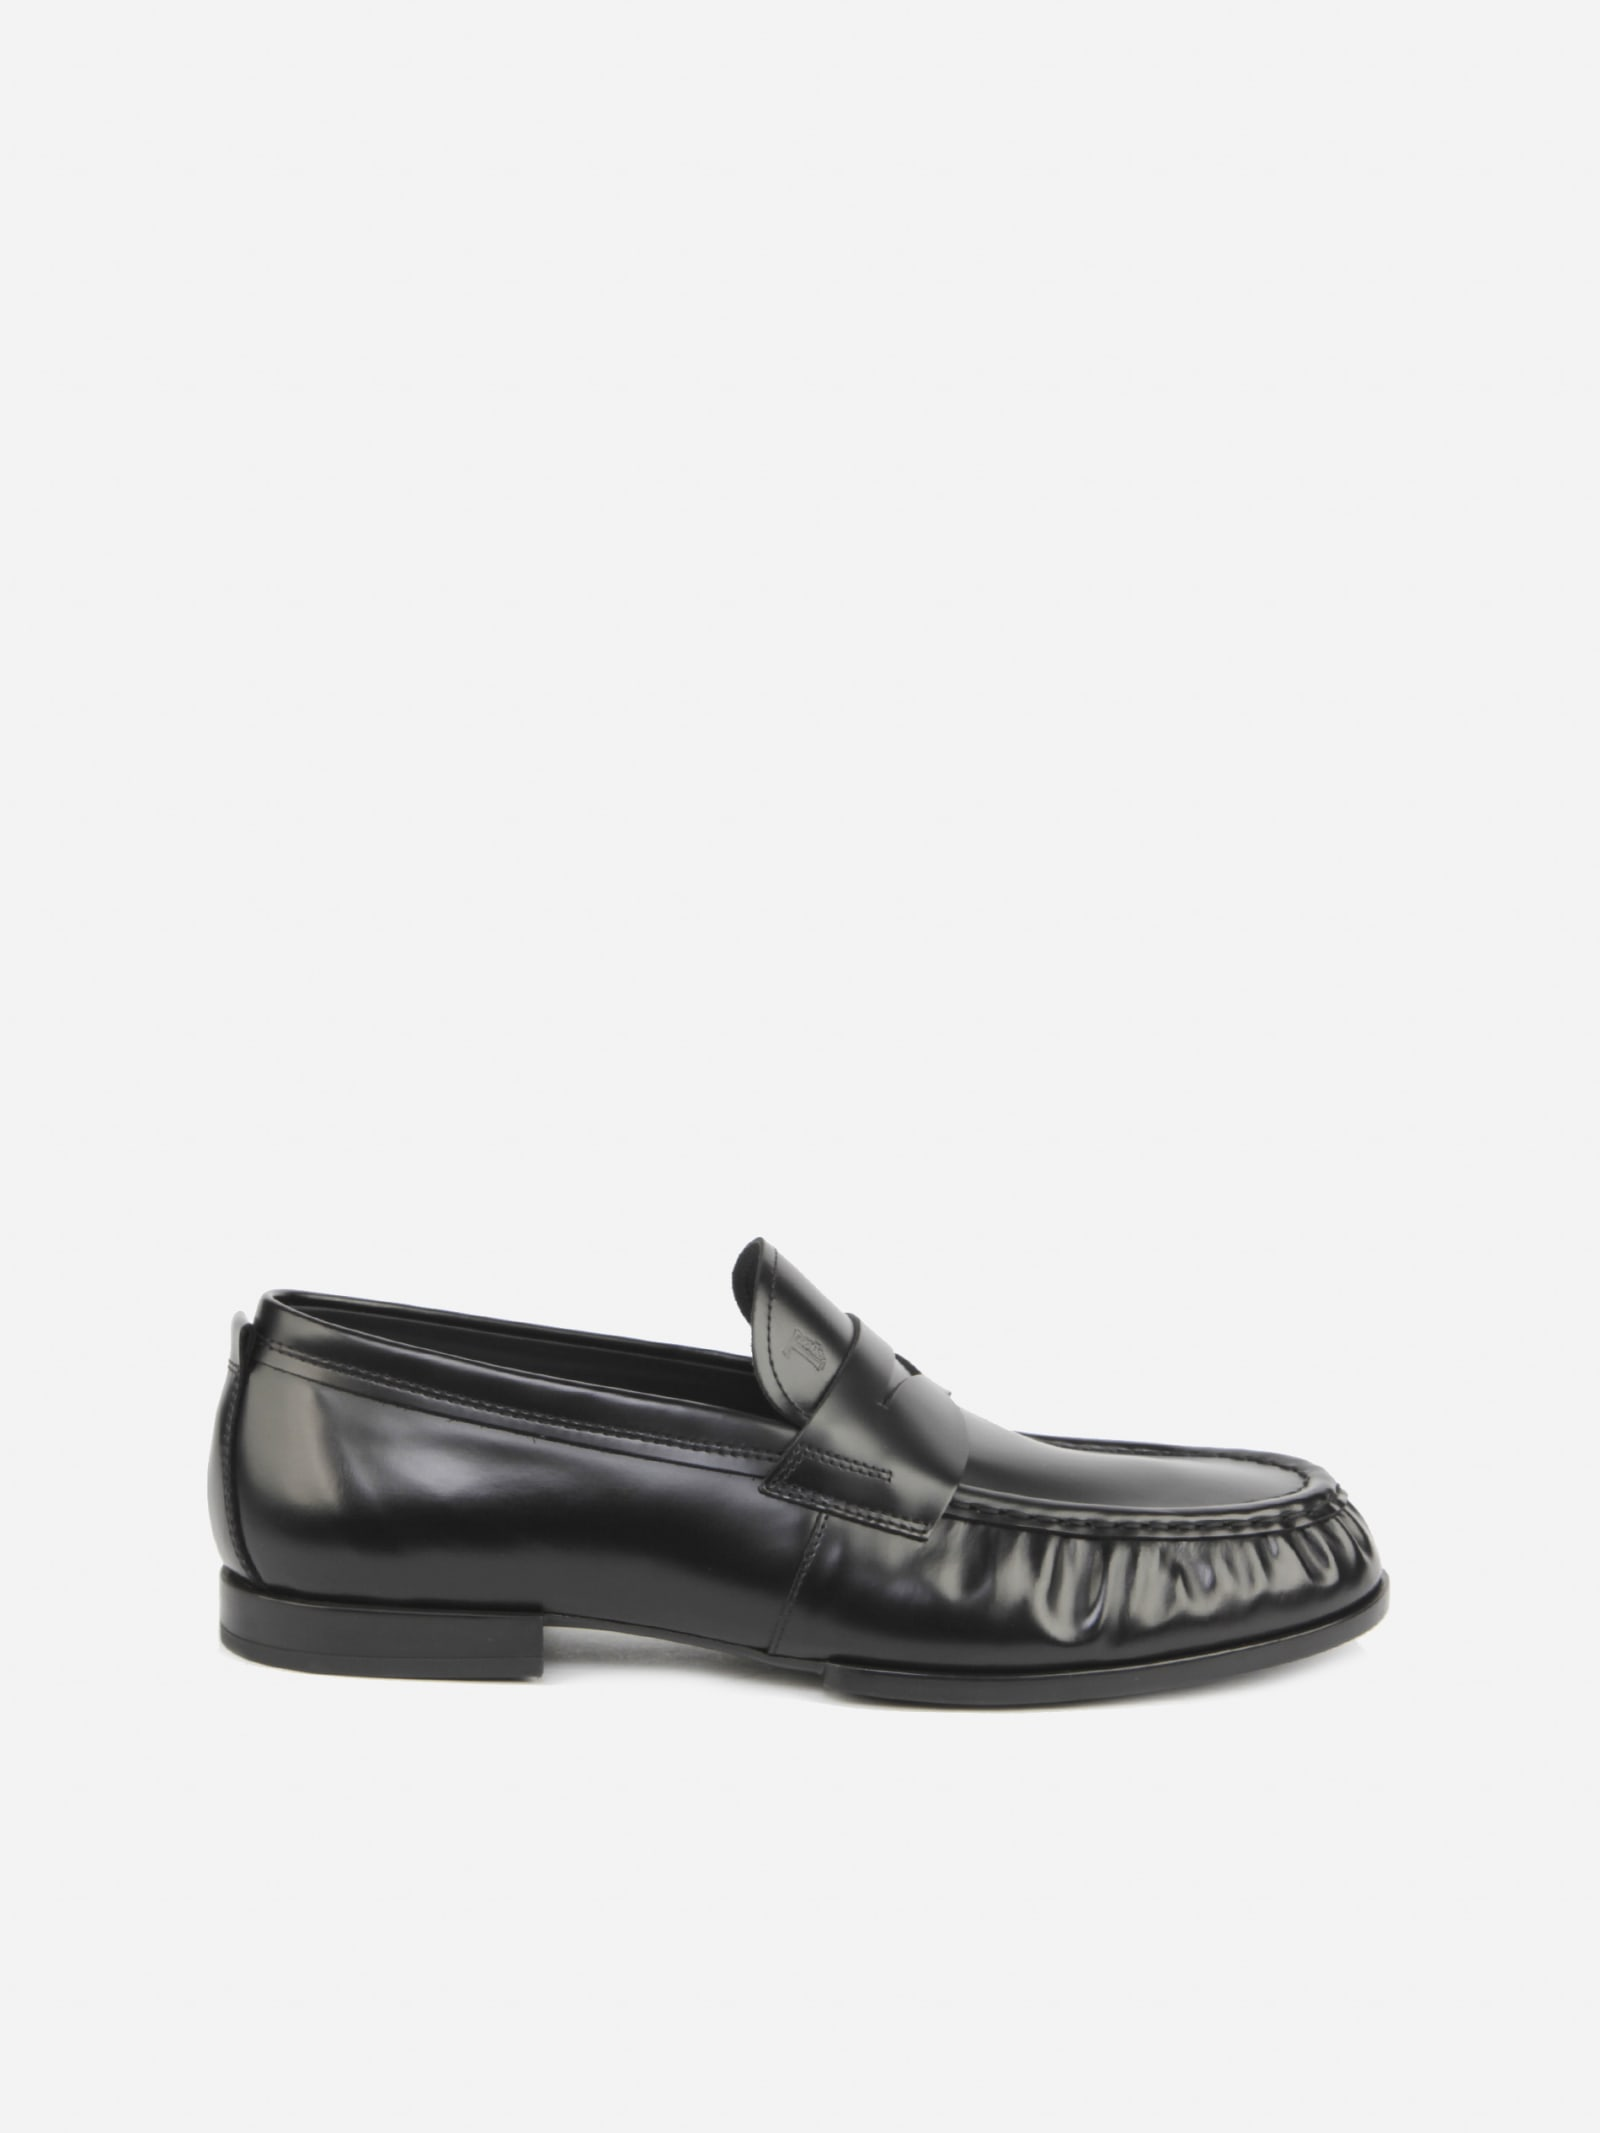 Tods Leather Loafers With Gathered Finish